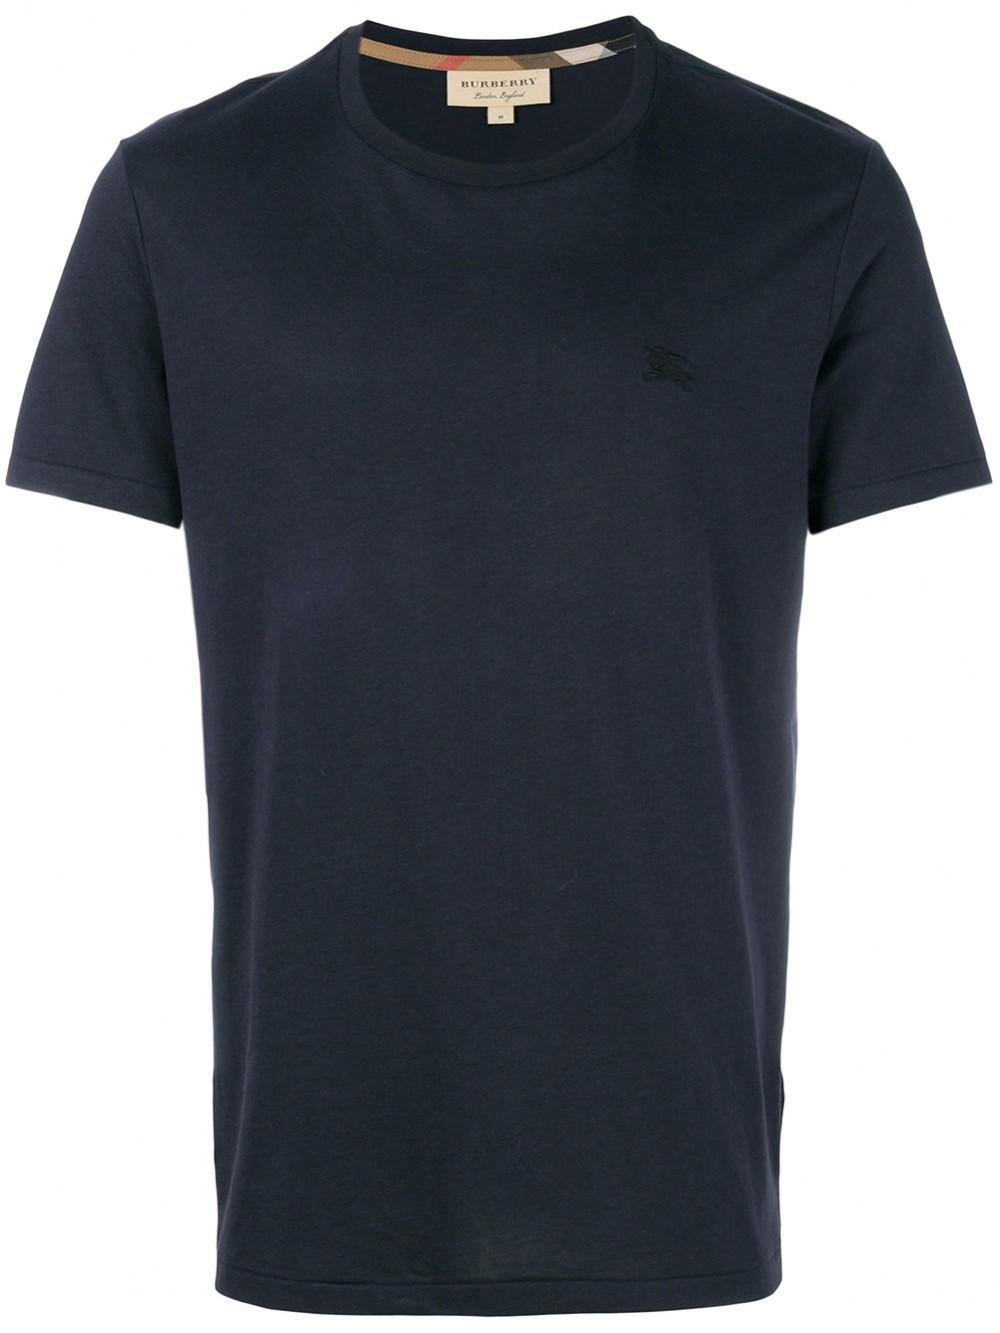 Burberry Embroidered Logo T-Shirt 4061818